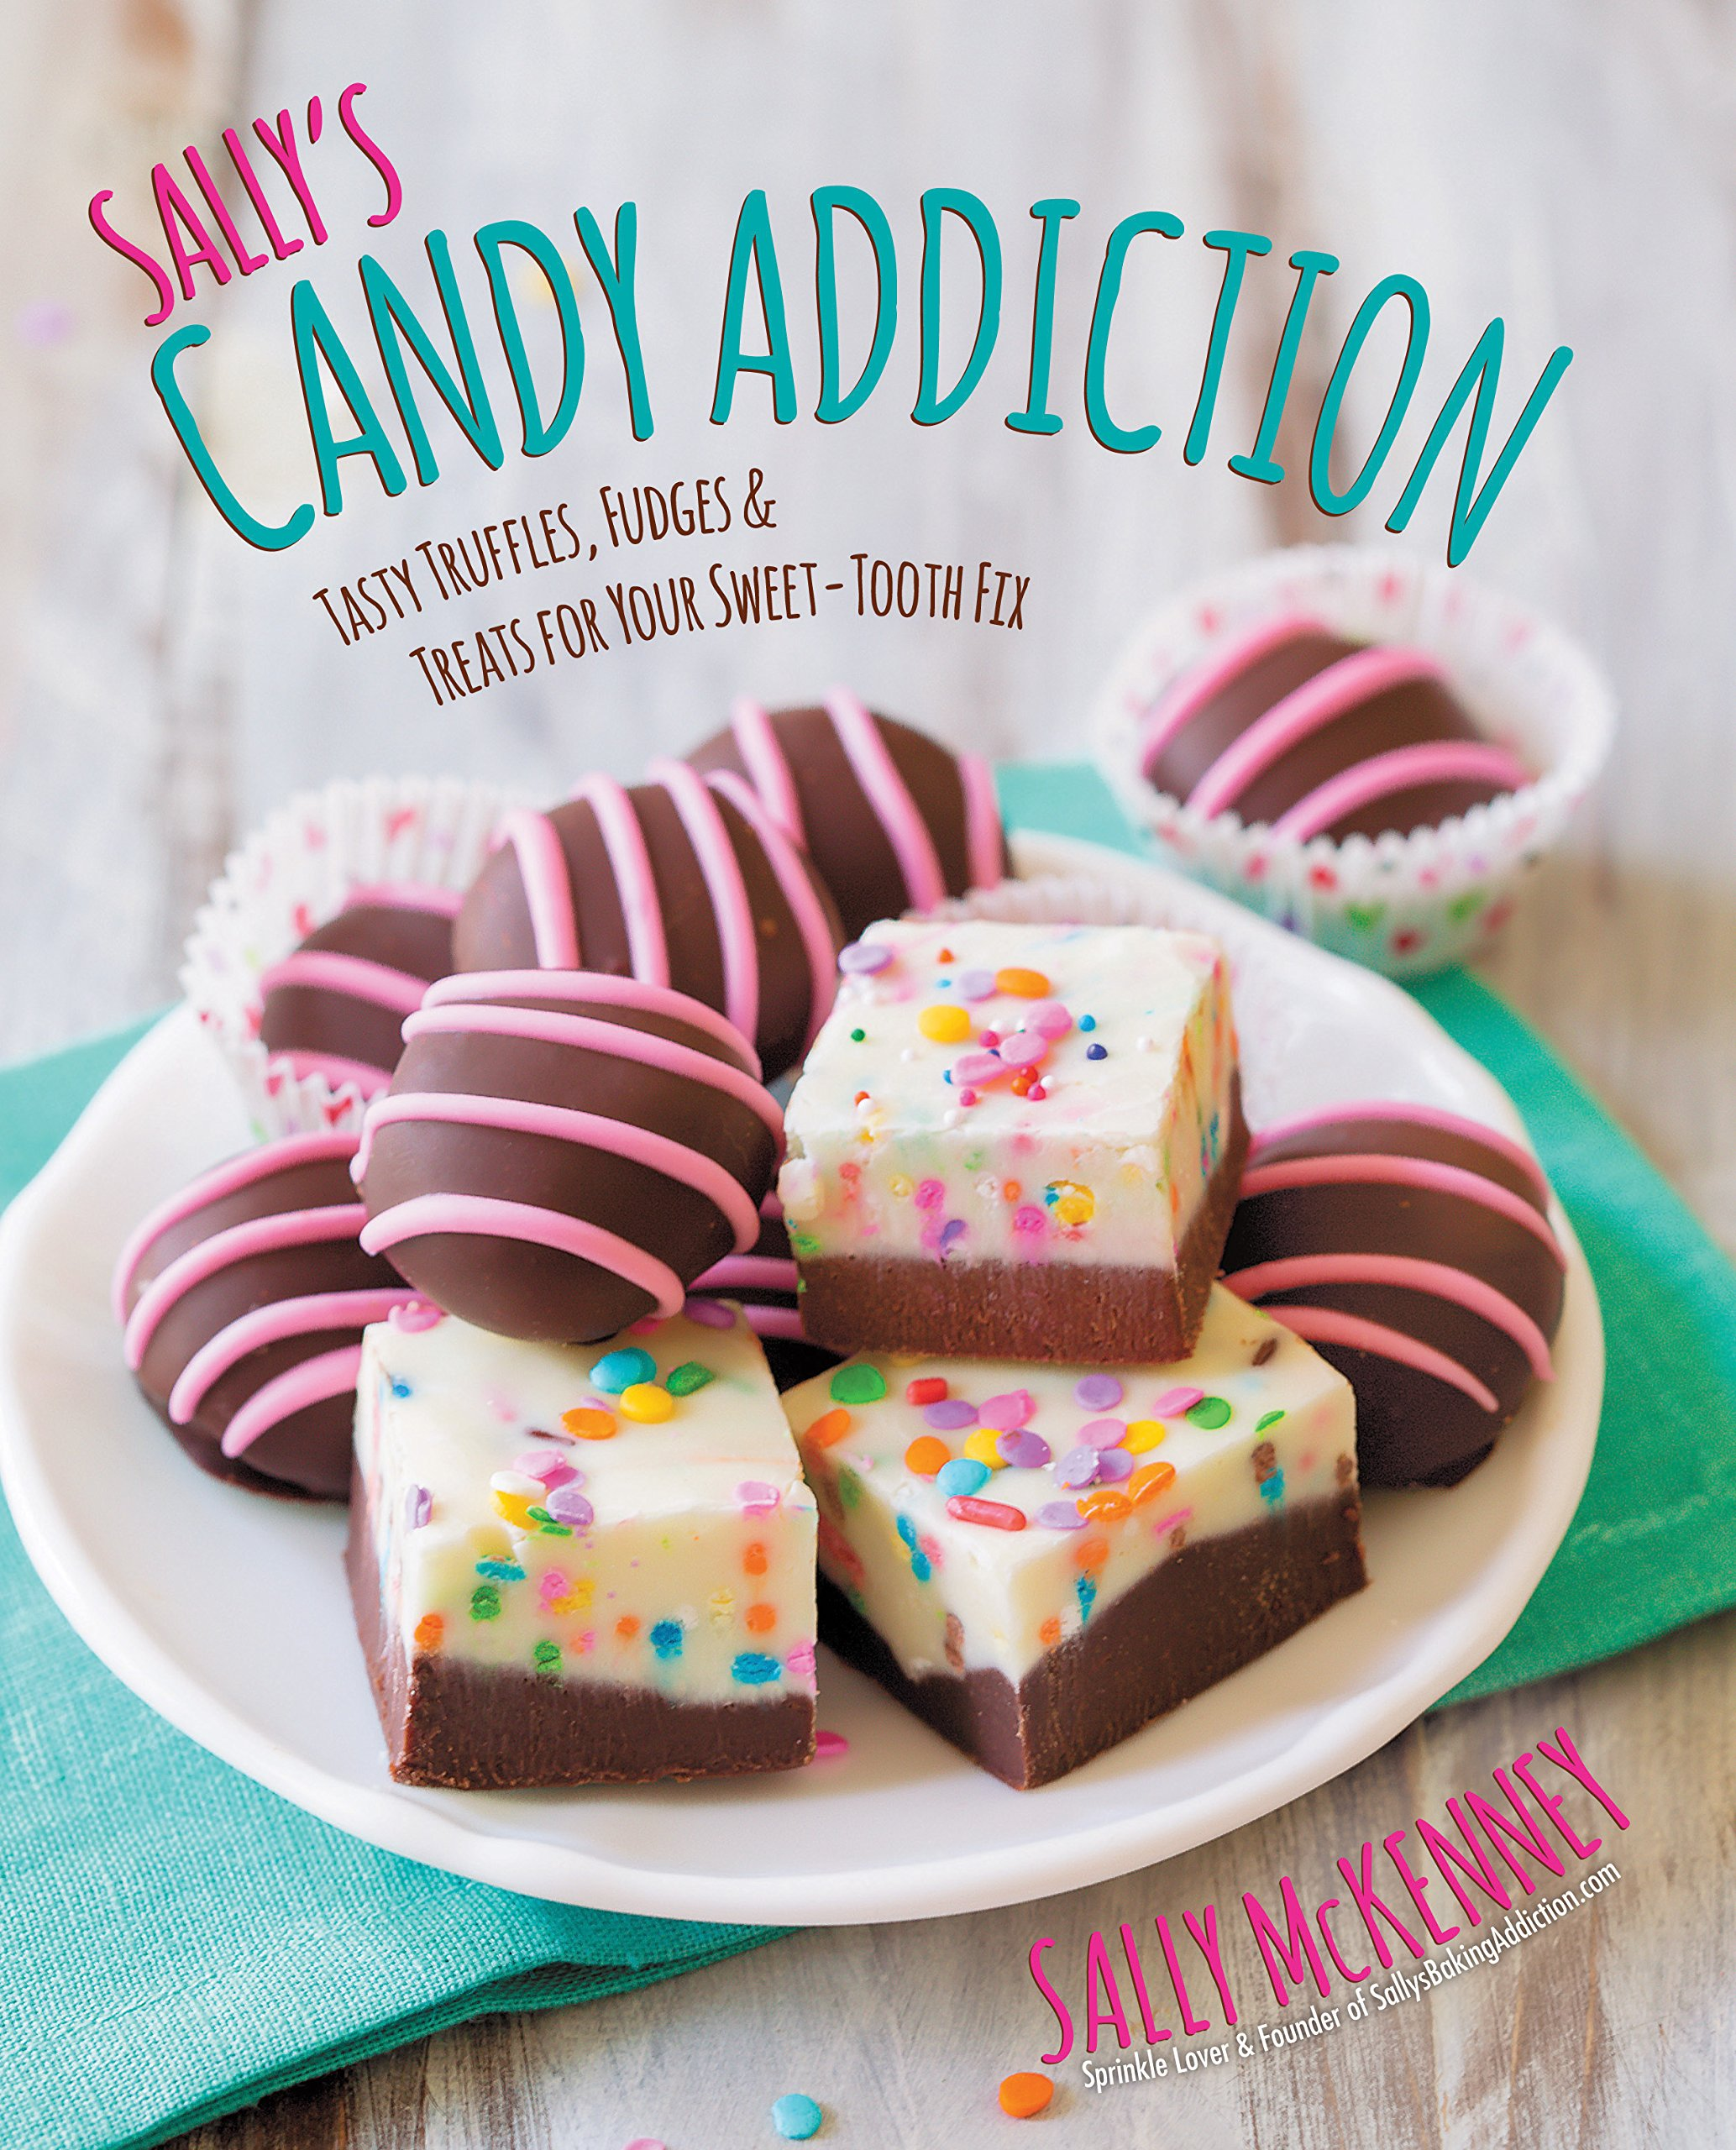 Sally'S Candy Addiction  Tasty Truffles Fudges And Treats For Your Sweet Tooth Fix